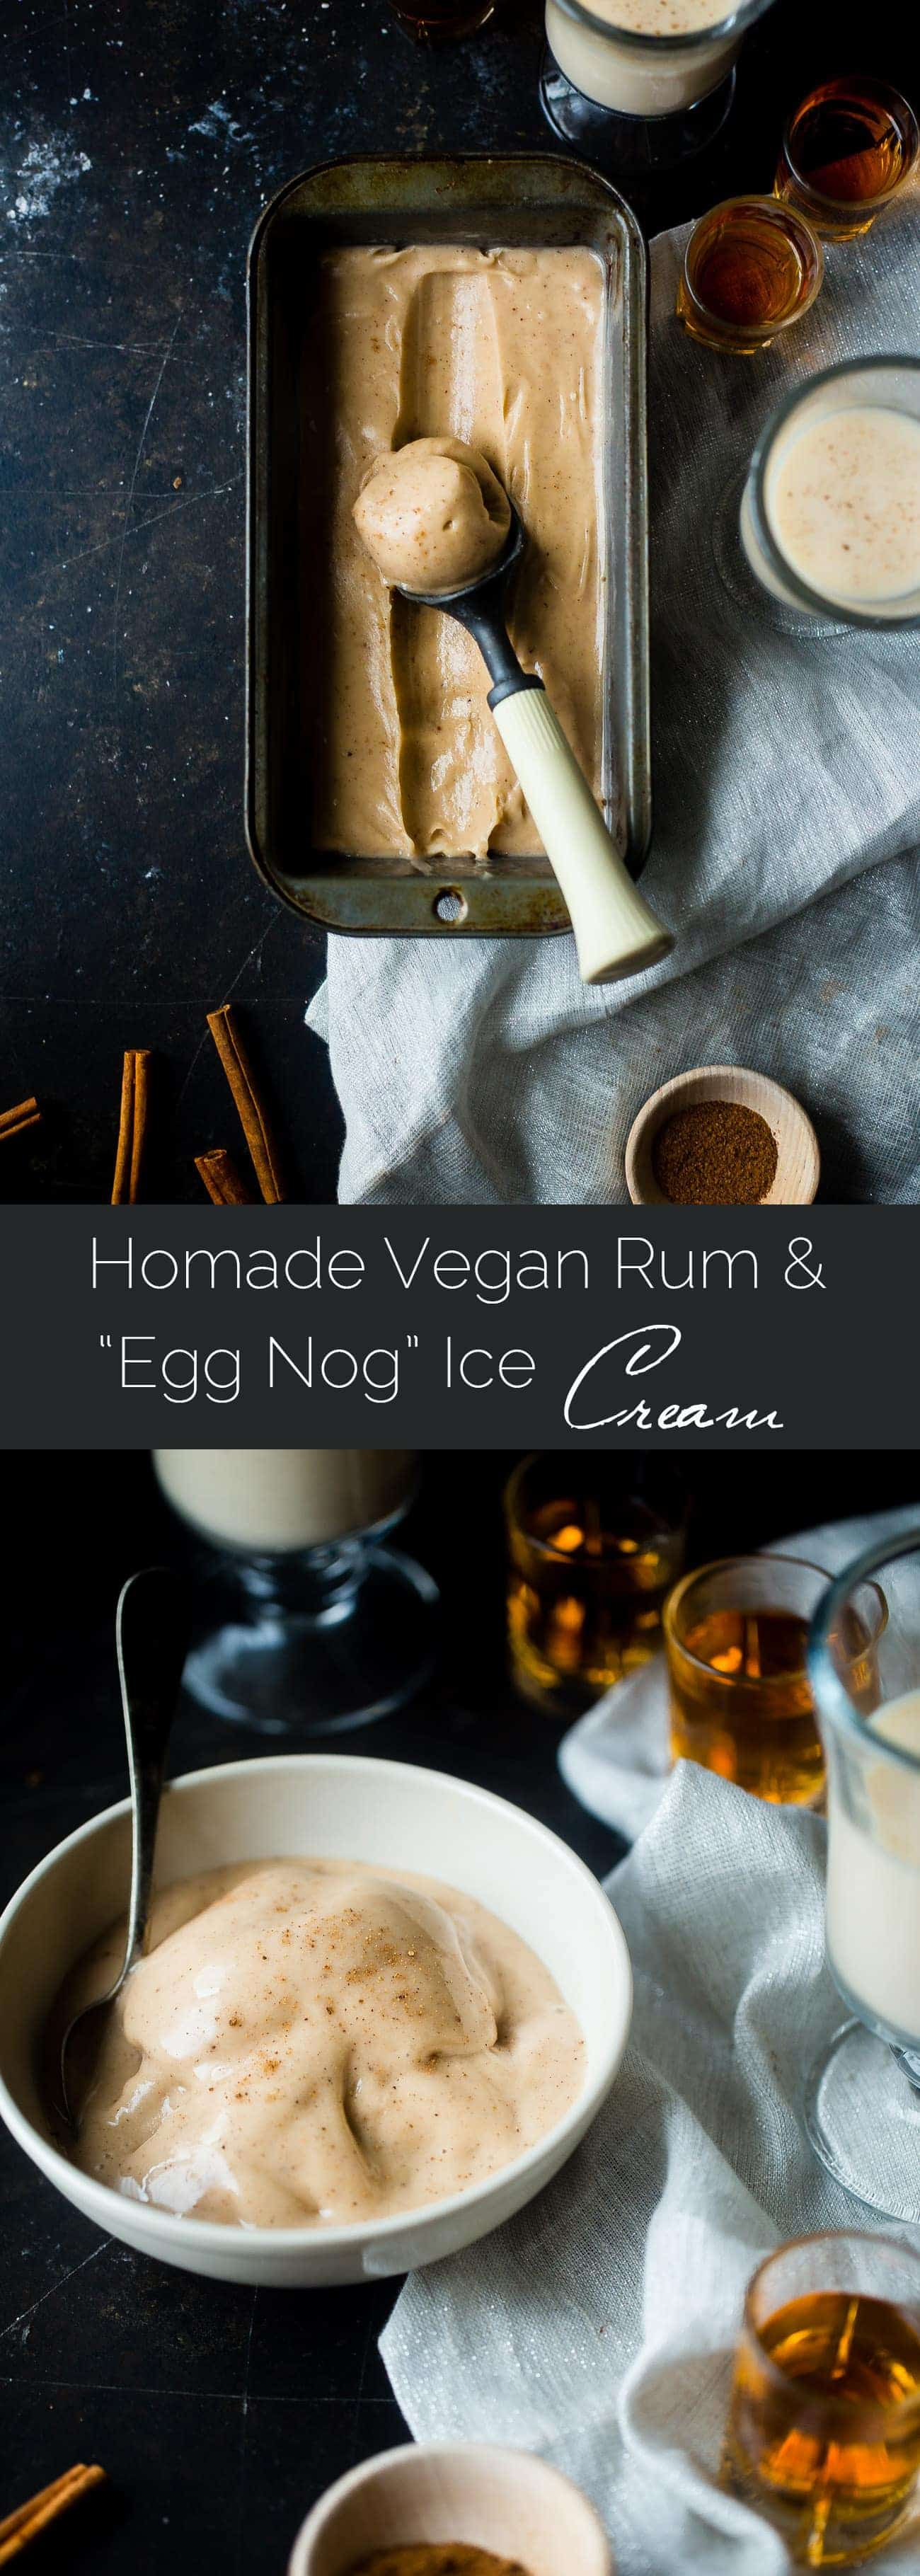 """Vegan Rum and """"Egg Nog"""" Ice Cream - This creamy, coconut milk ice cream tastes like frosty version of drinking a rum and eggnog...without the dairy or eggs! It's a healthy treat for the holidays! 